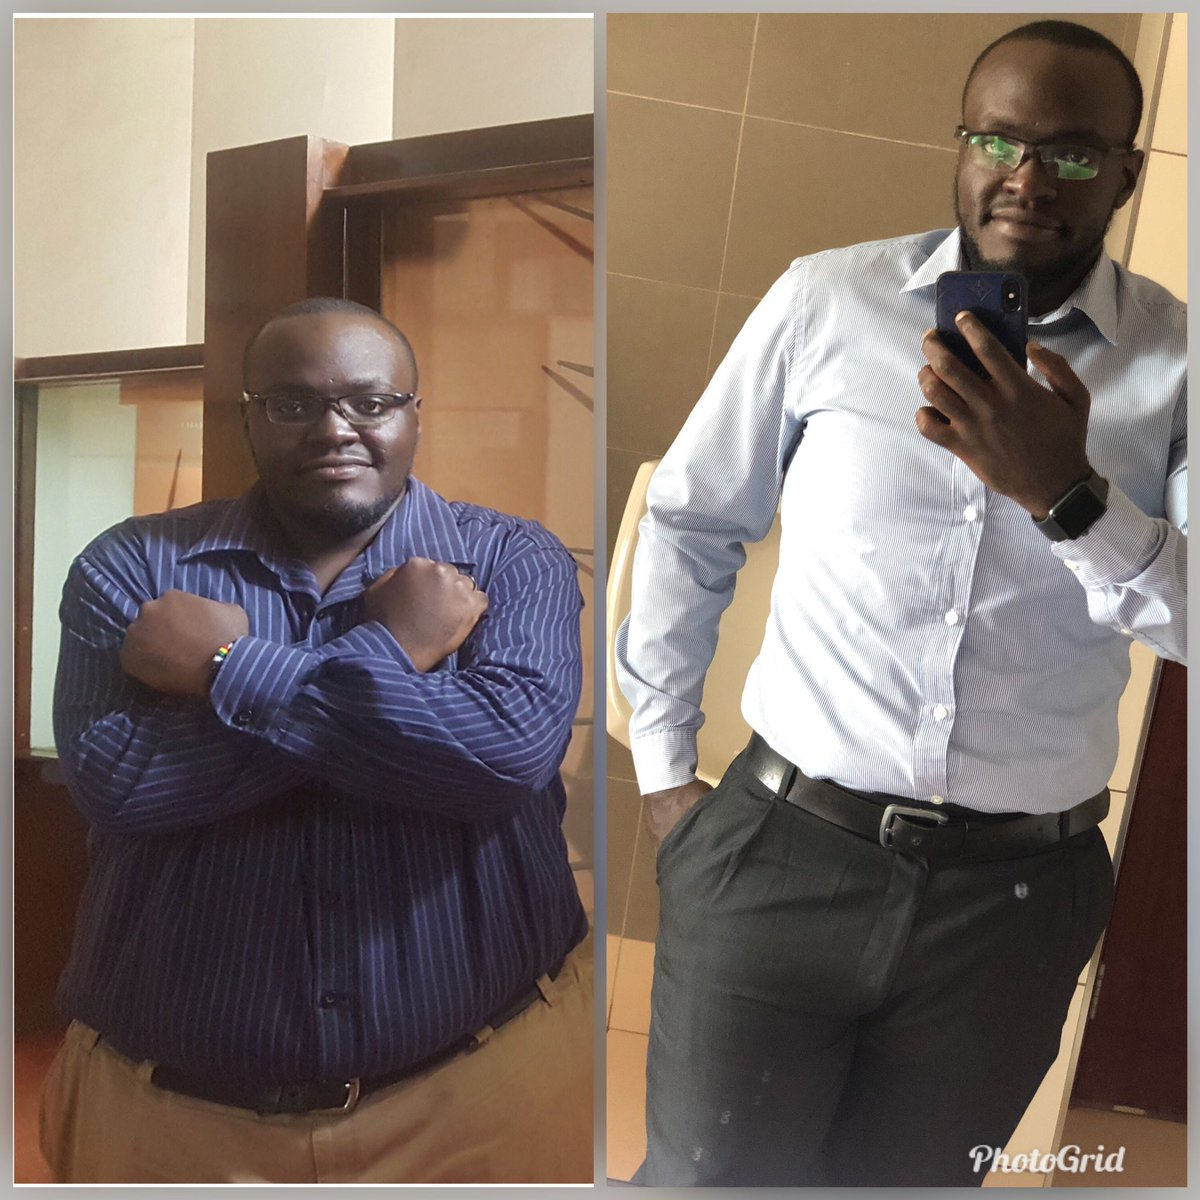 2018 vs 2020. This shit ain't easy. I'm truly blessed to have come this far. I'm not done yet #weightloss #fitnessjourney pic.twitter.com/tLUjHU8gq8